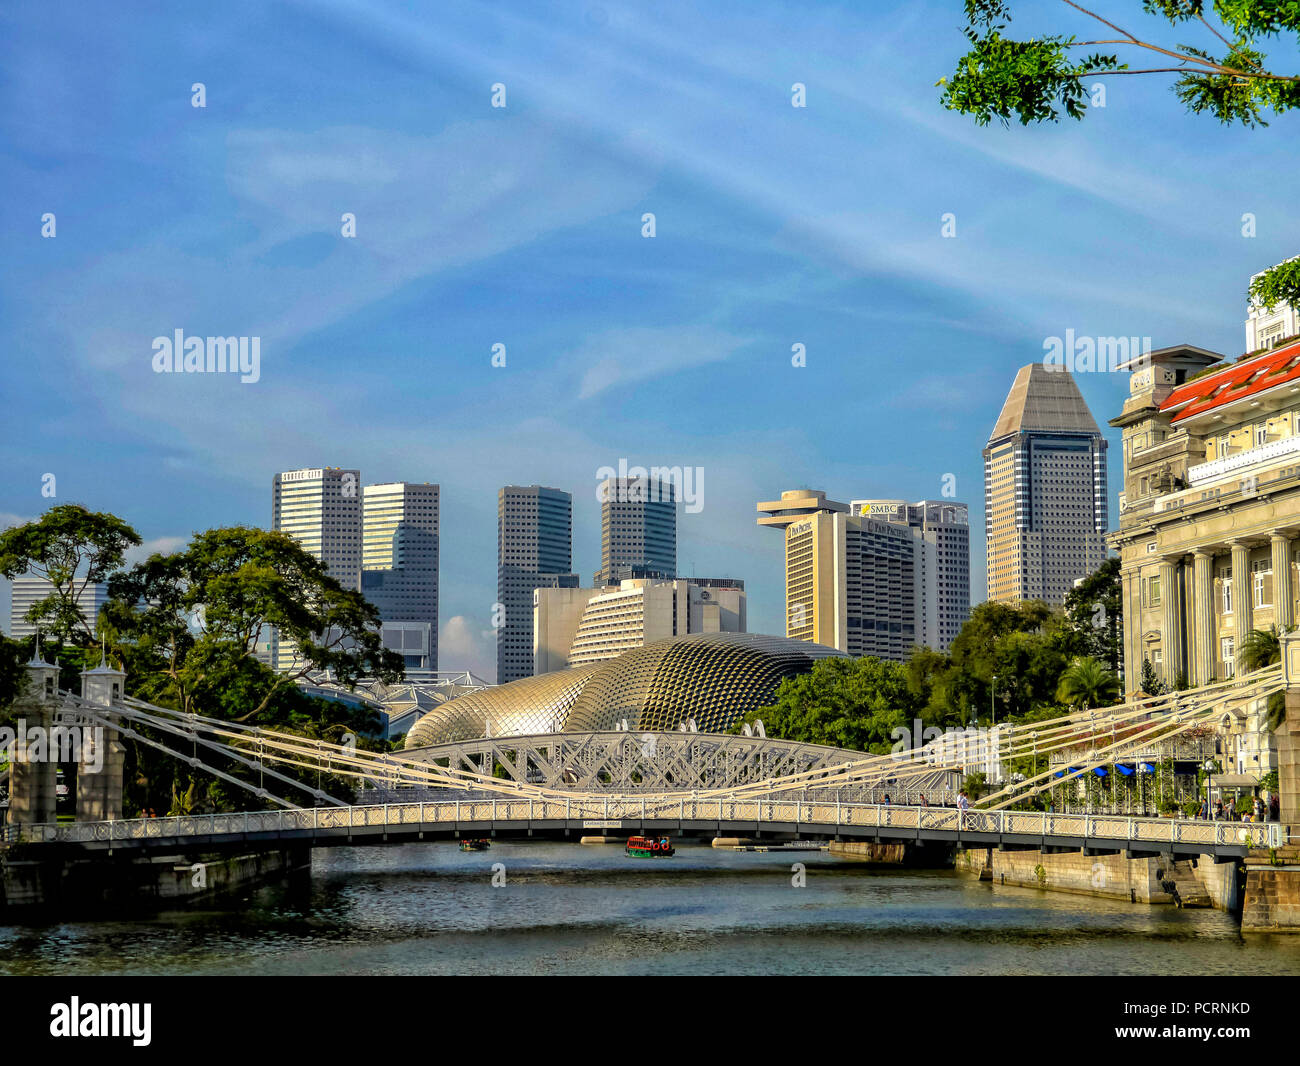 Fullerton Hotel at Singapore River and Financial District Skyscrapers, Central Area, Central Business District, Anderson Bridge, Singapore, Asia, Singapore - Stock Image